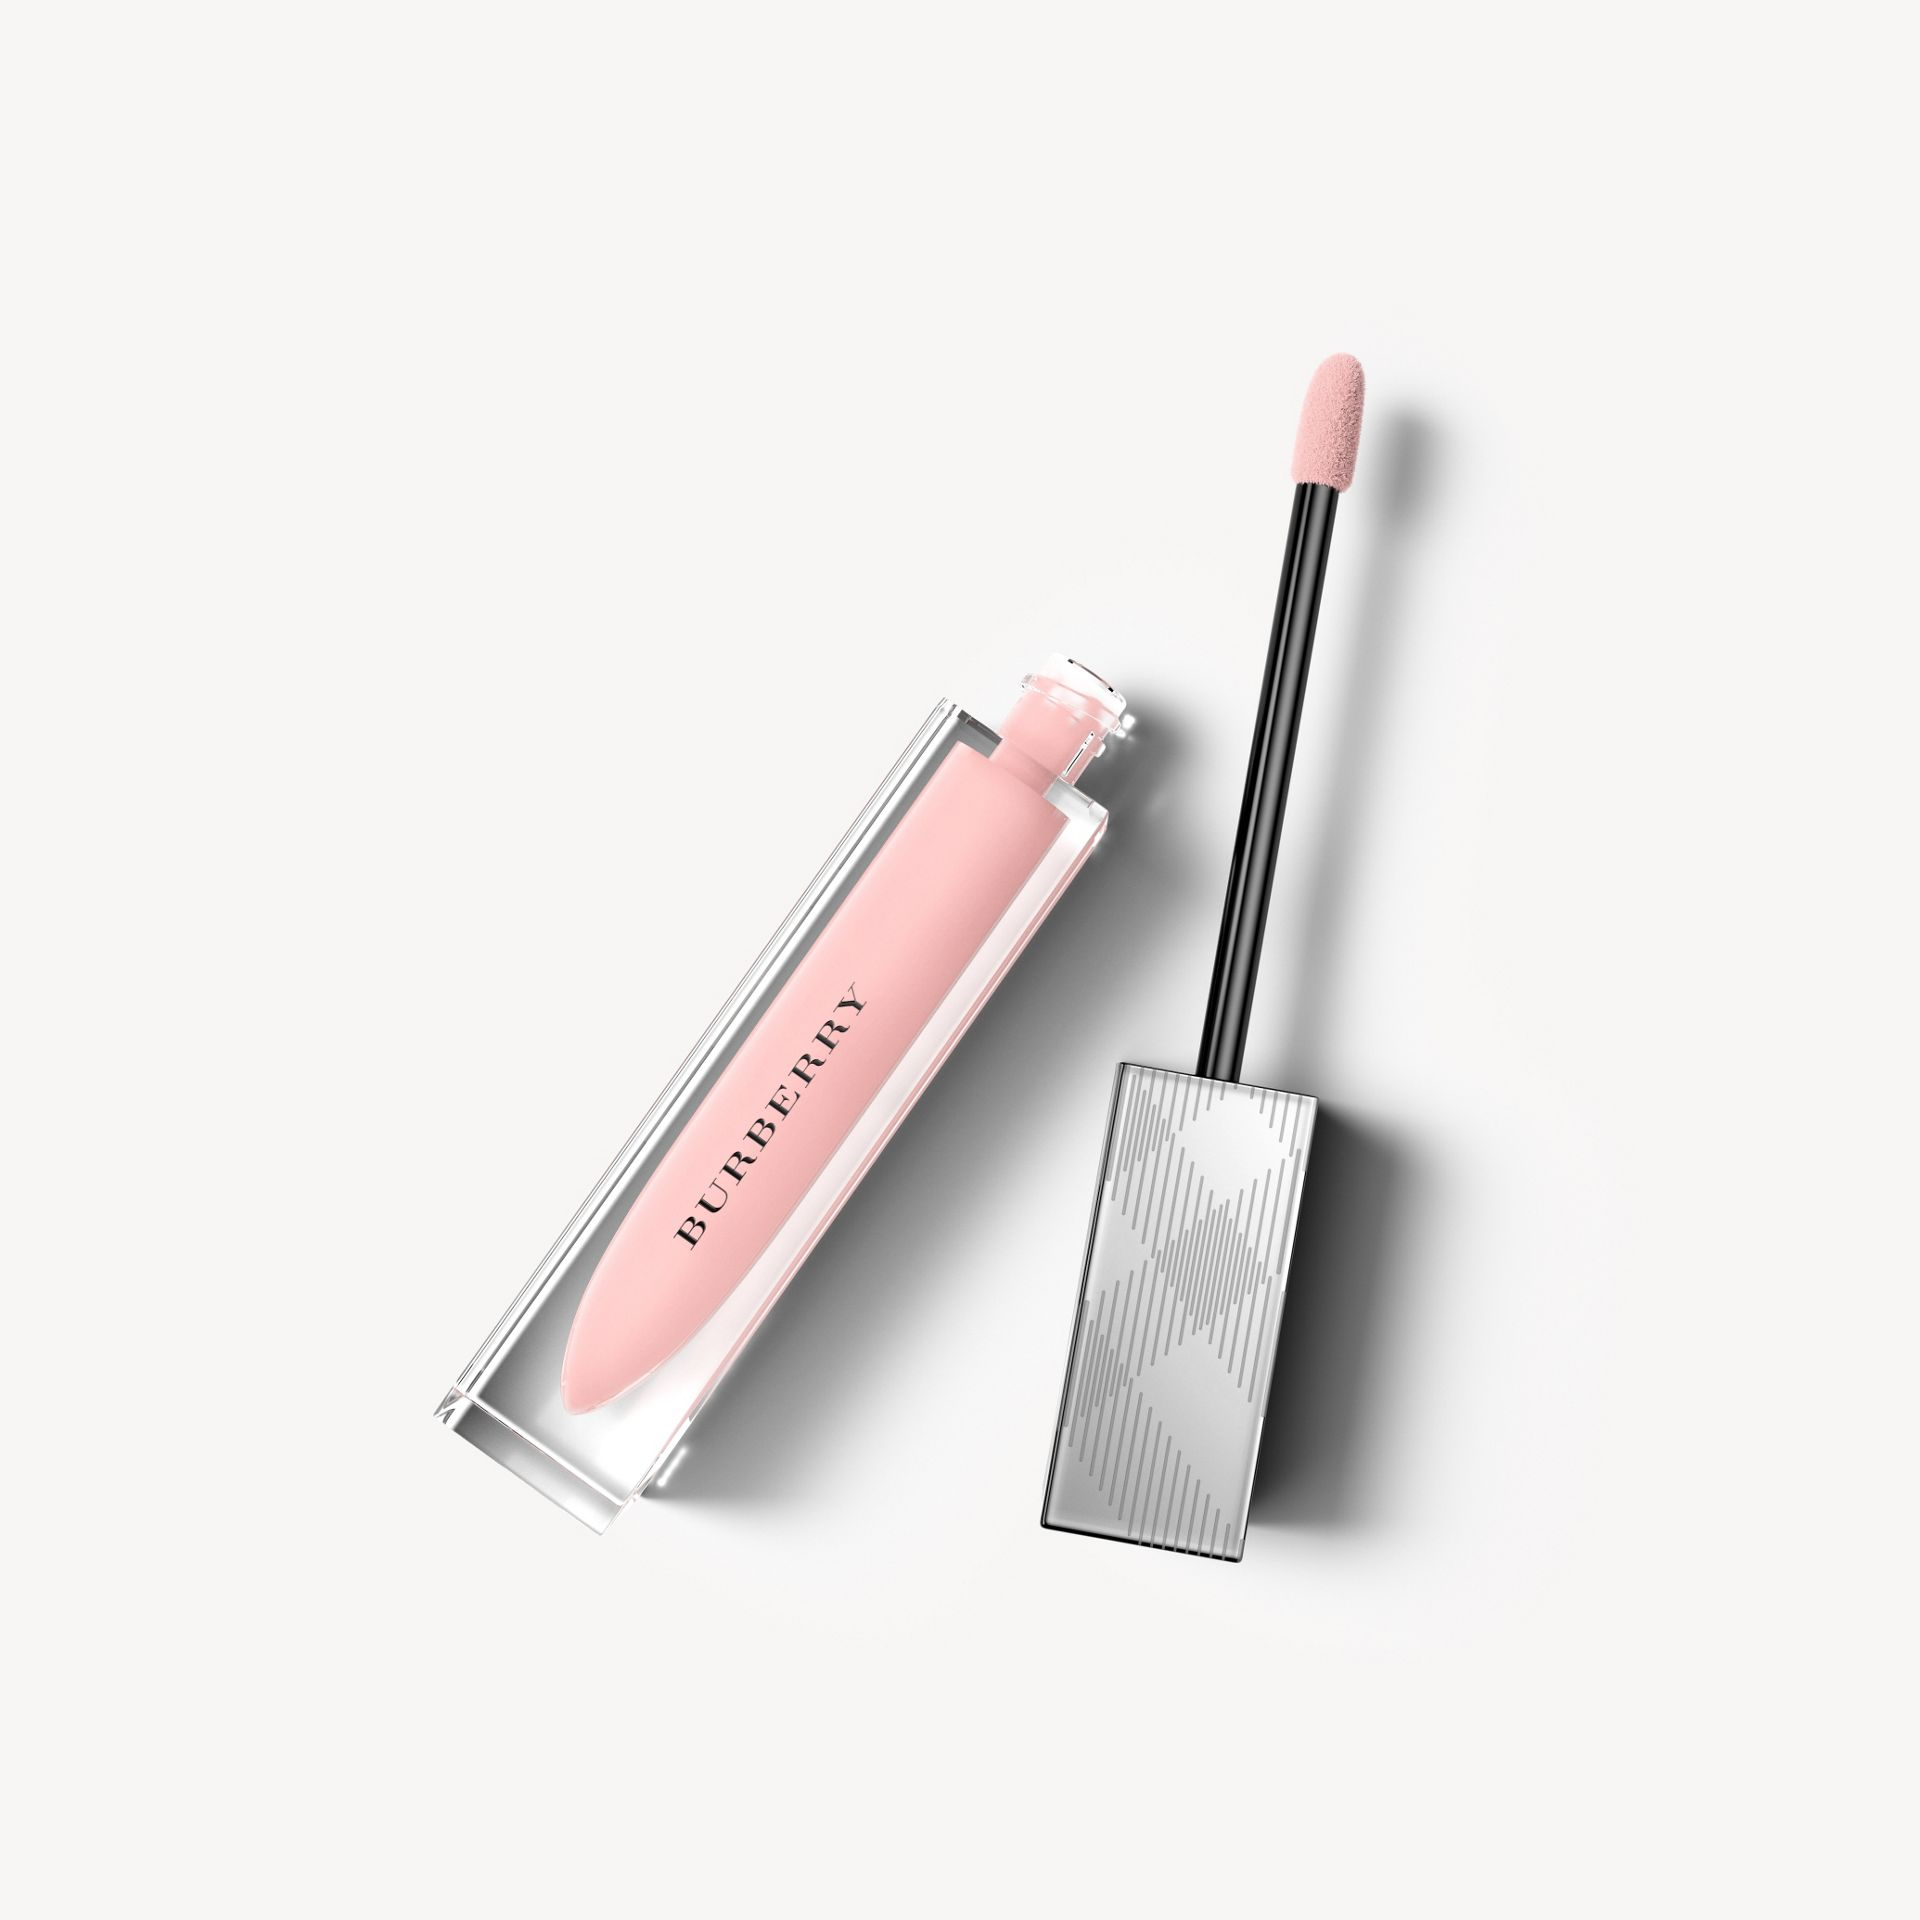 Coral rose № 65 Блеск для губ Burberry Kisses Gloss, Coral Rose № 65 - изображение 1